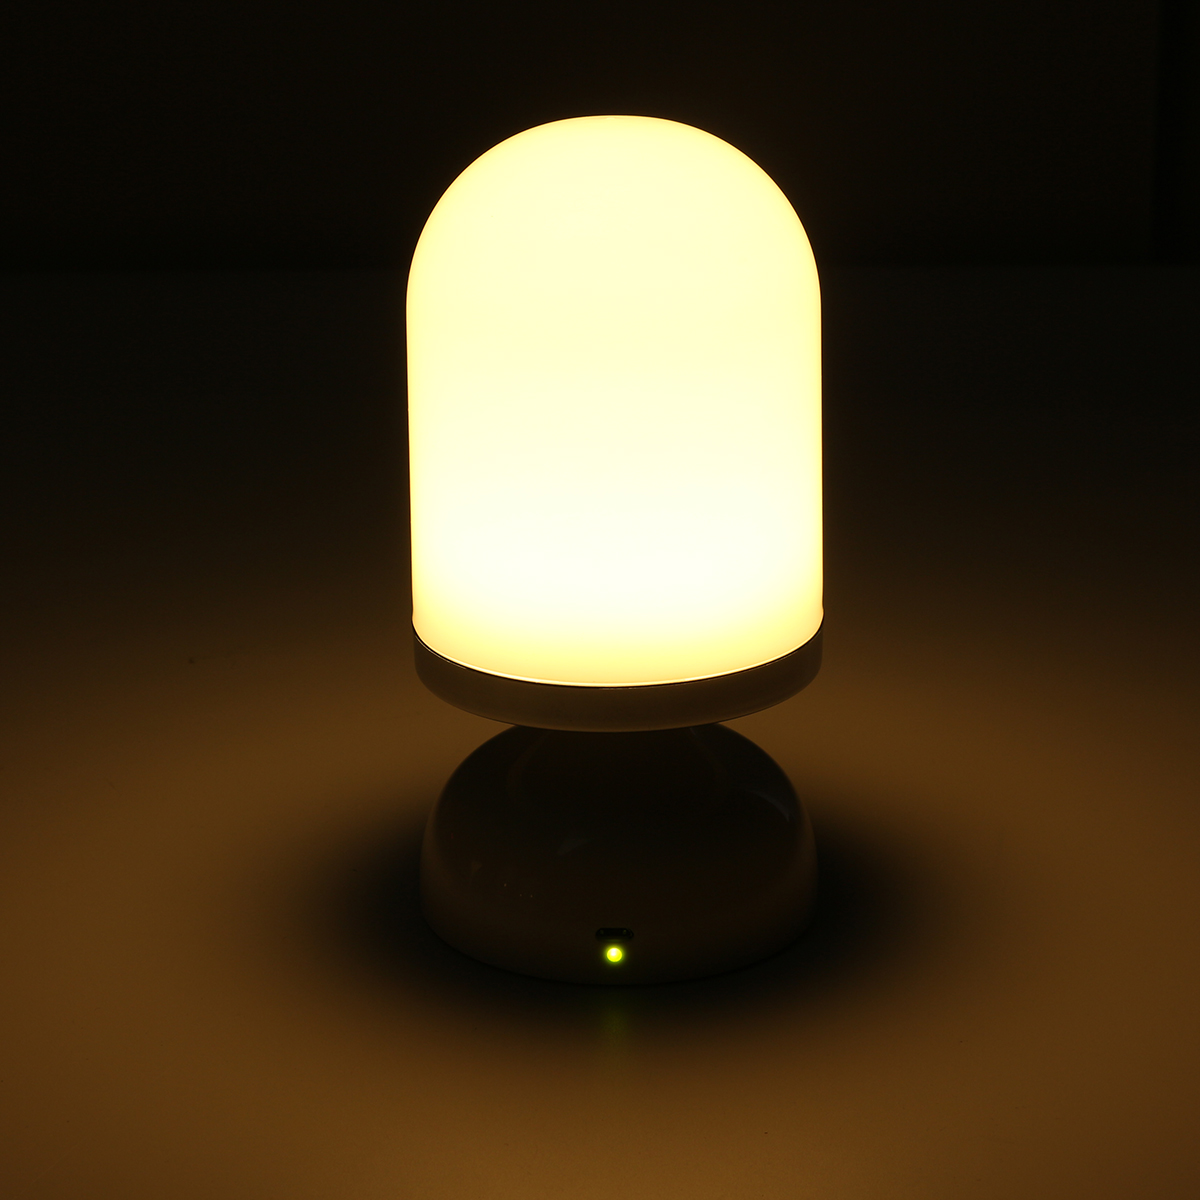 Lamp And Nightlight Portable Usb Rechargeable Led Night Light Hanging Stand